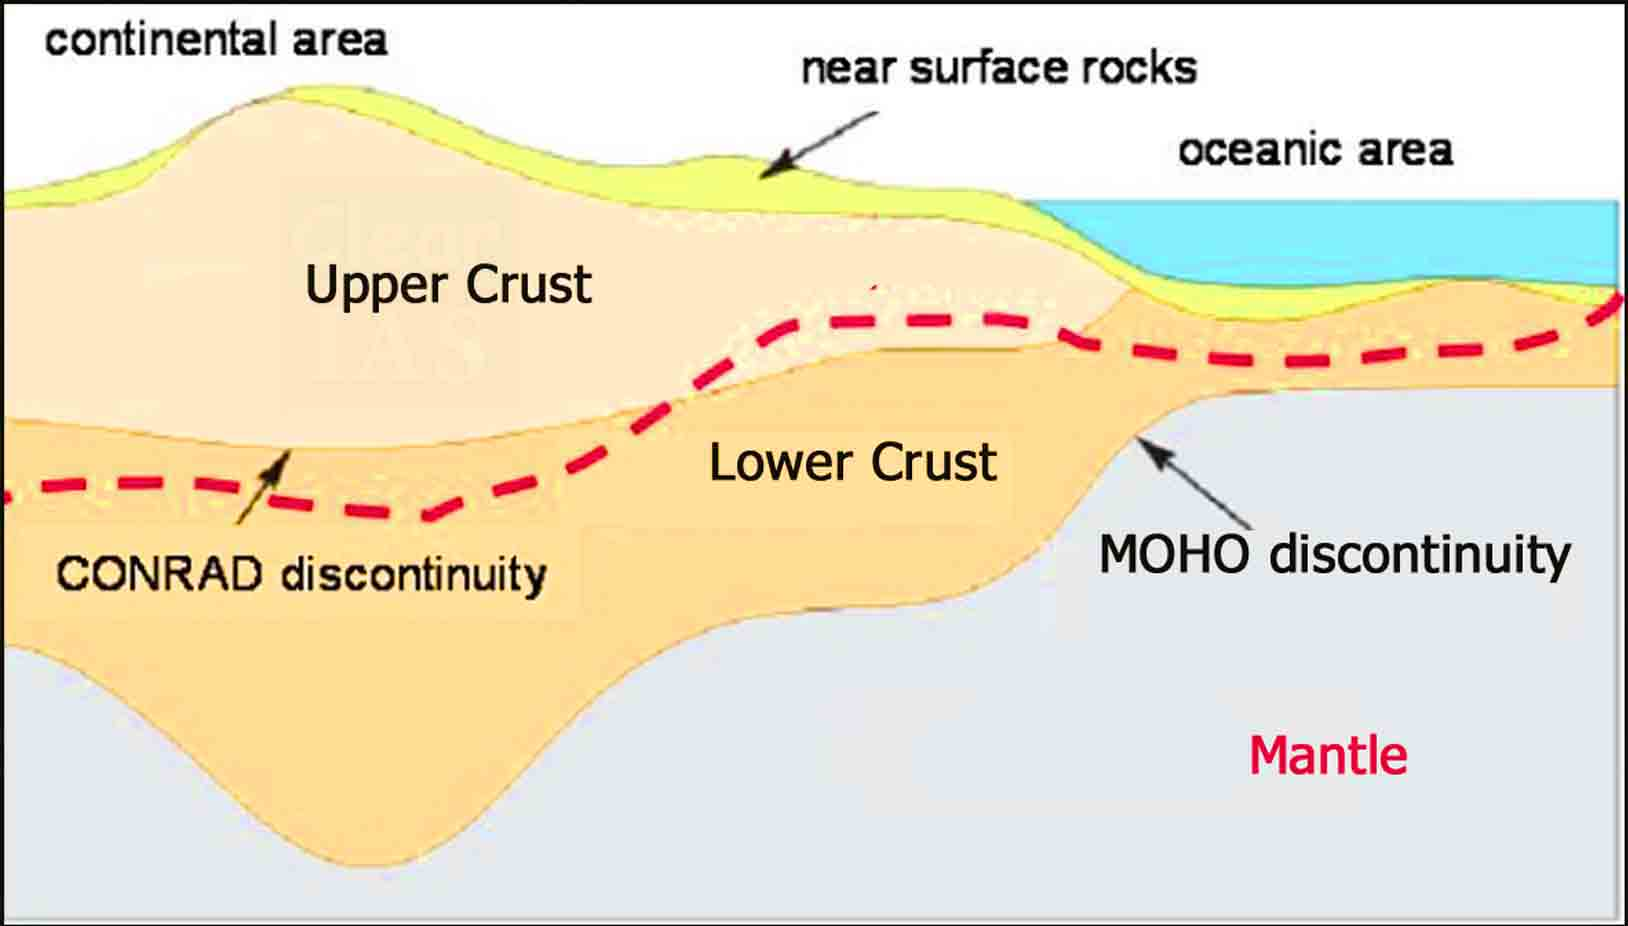 CONRAD and MOHO discontinuities